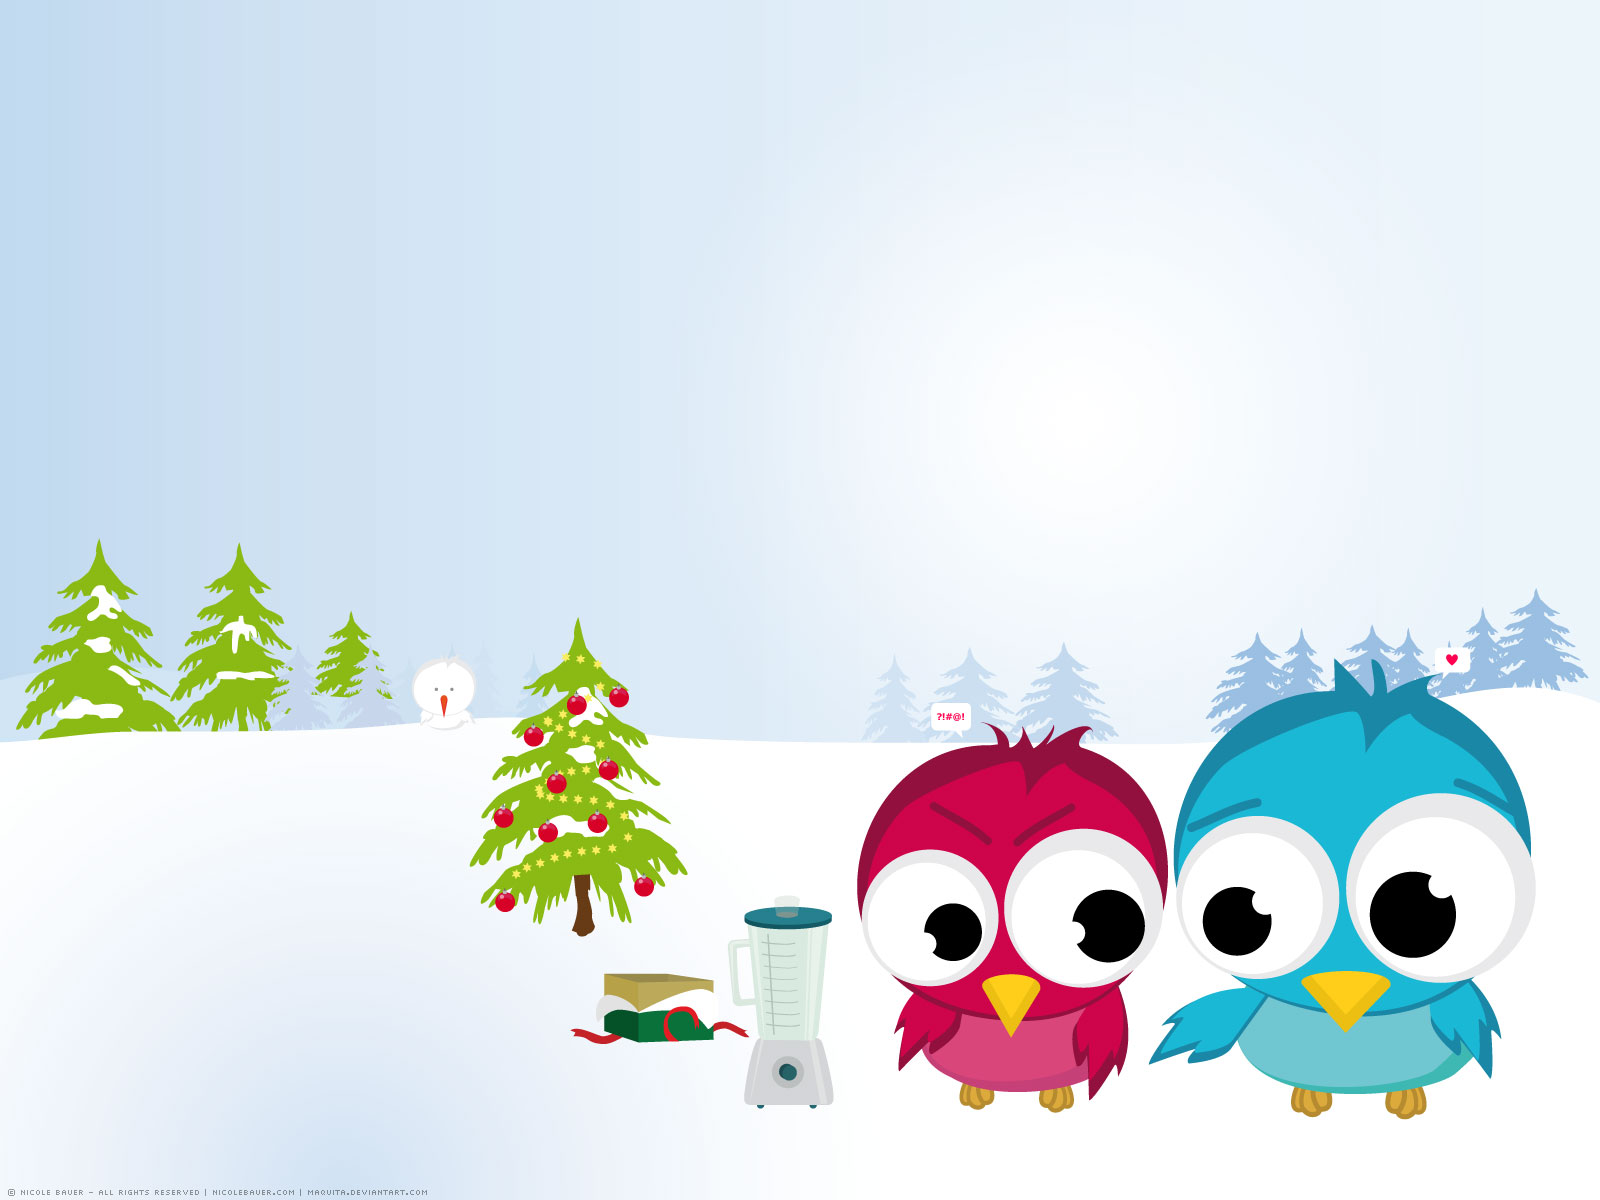 http://4.bp.blogspot.com/-o2MvPE5s_dE/Taby5uF5xTI/AAAAAAAABCw/YR9OsNh9Wxw/s1600/Christmas-Background-Wallpapers.jpg